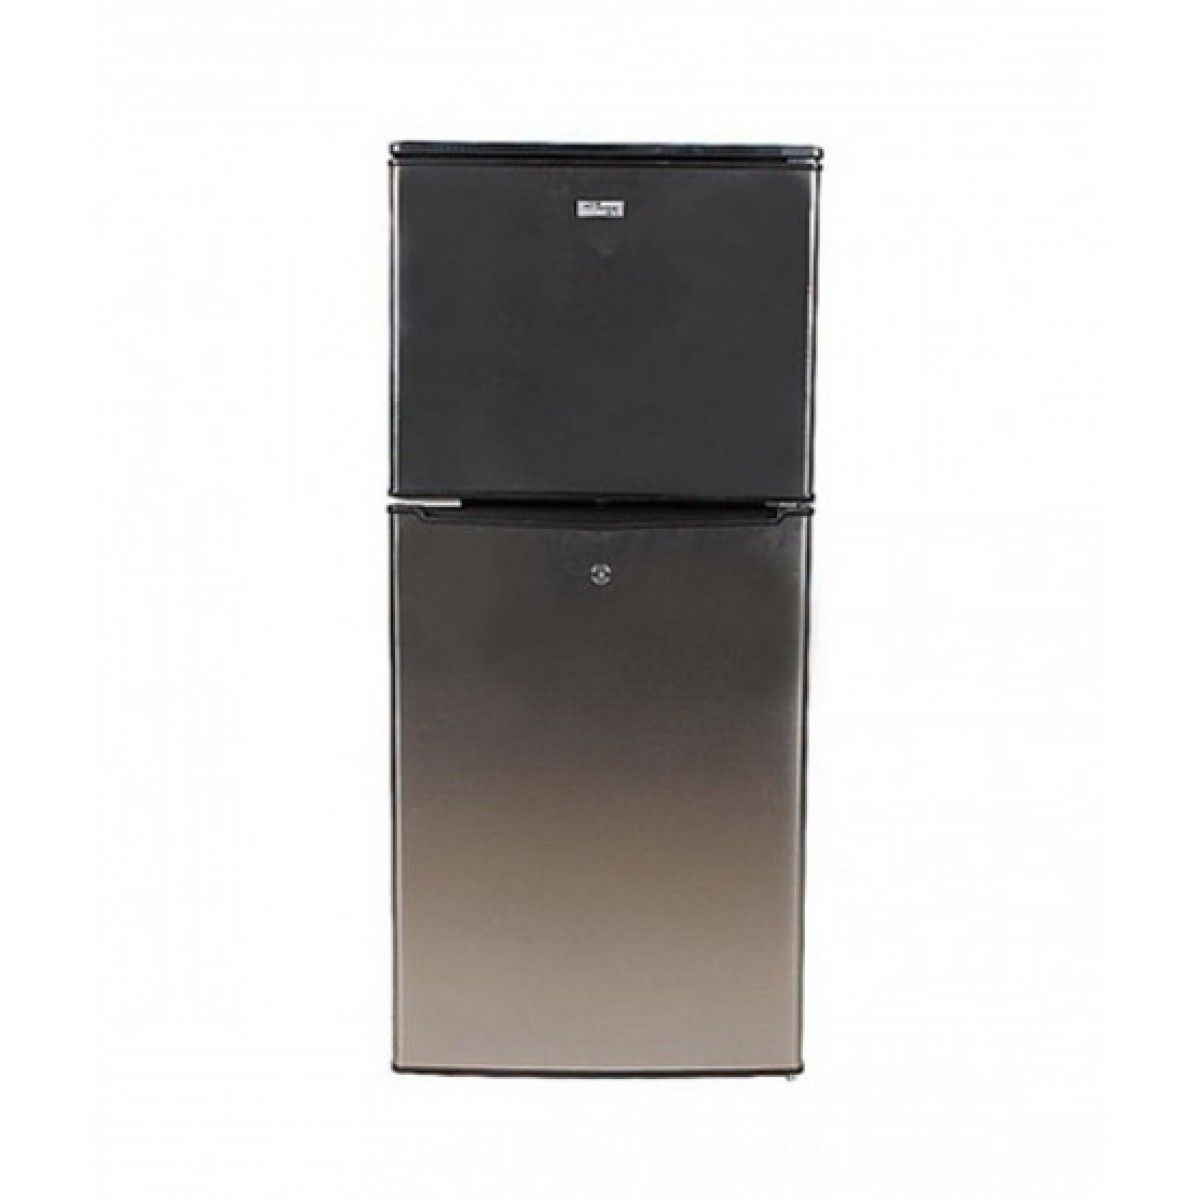 Gaba National (GNR-188-SS) Double Door Refrigerator